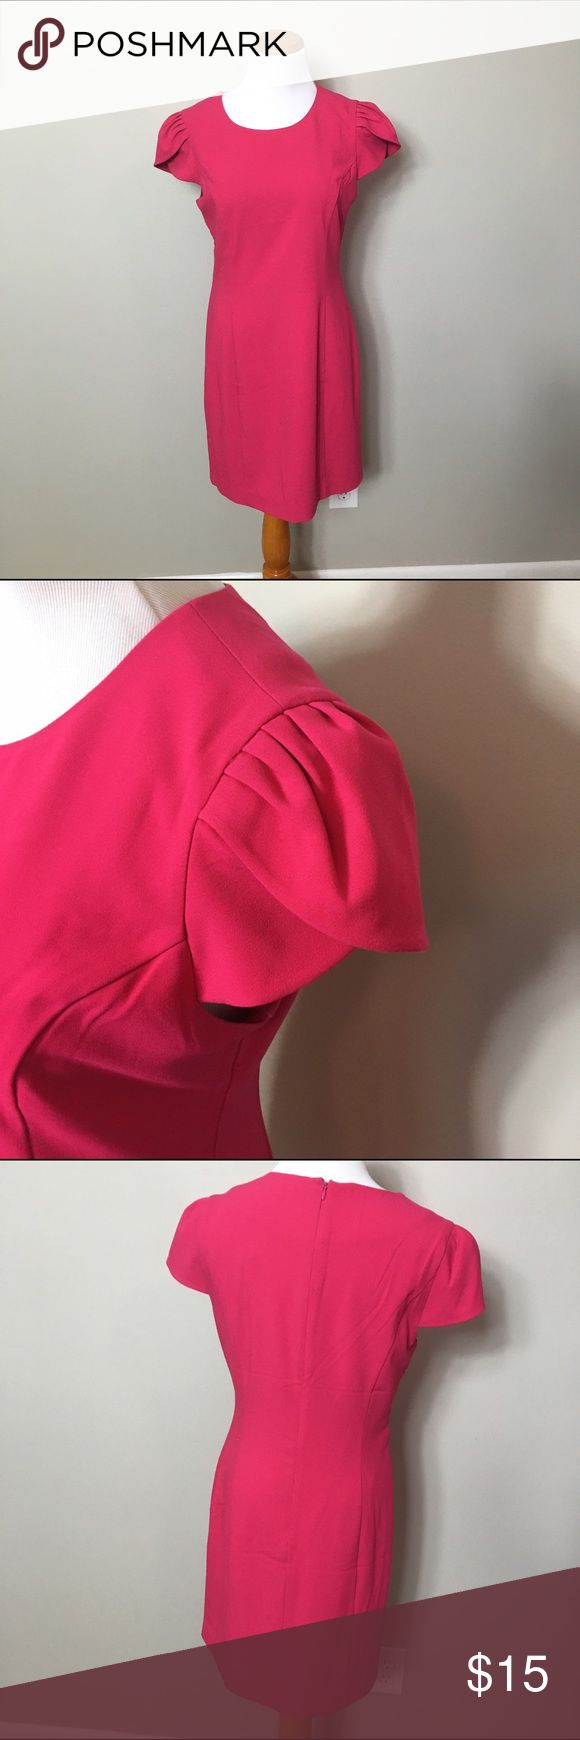 NWT tulip sleeve hot pink shift dress NWT tulip sleeve hot pink shift dress Forever 21 Dresses